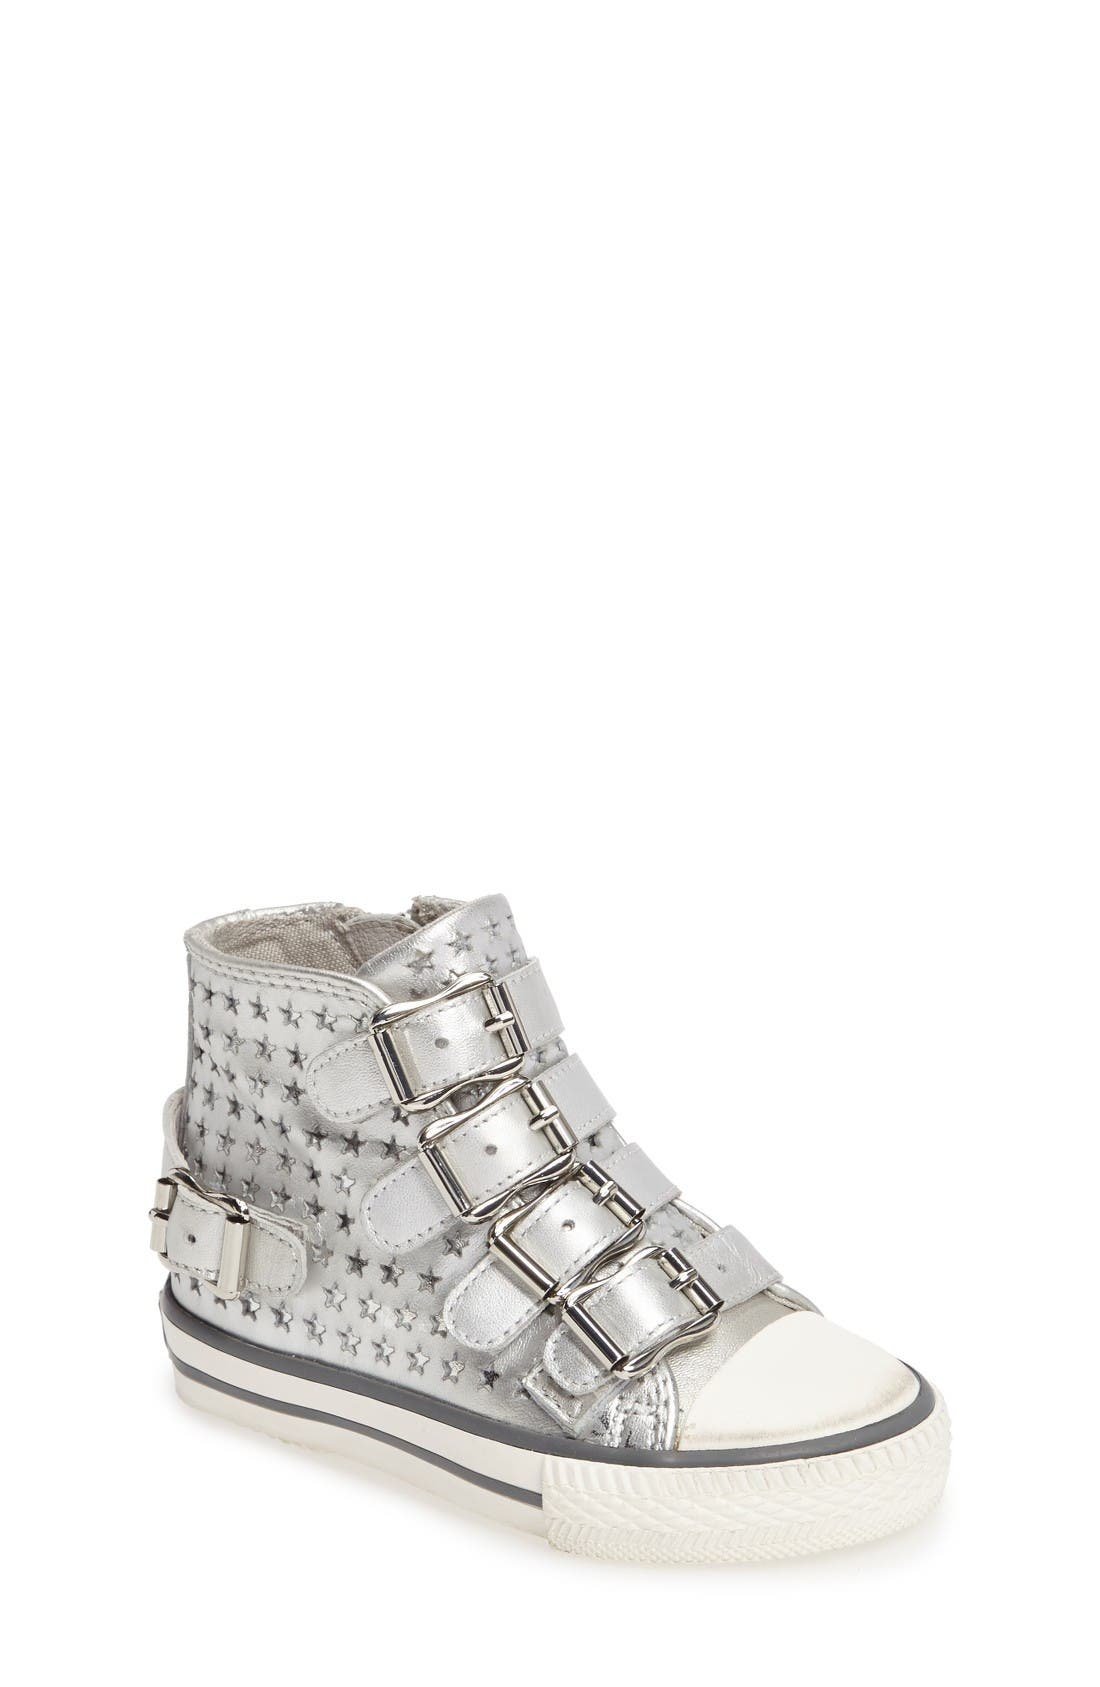 Vava Starboss Buckle Strap High Top Sneaker,                             Main thumbnail 1, color,                             Silver Metallic Leather